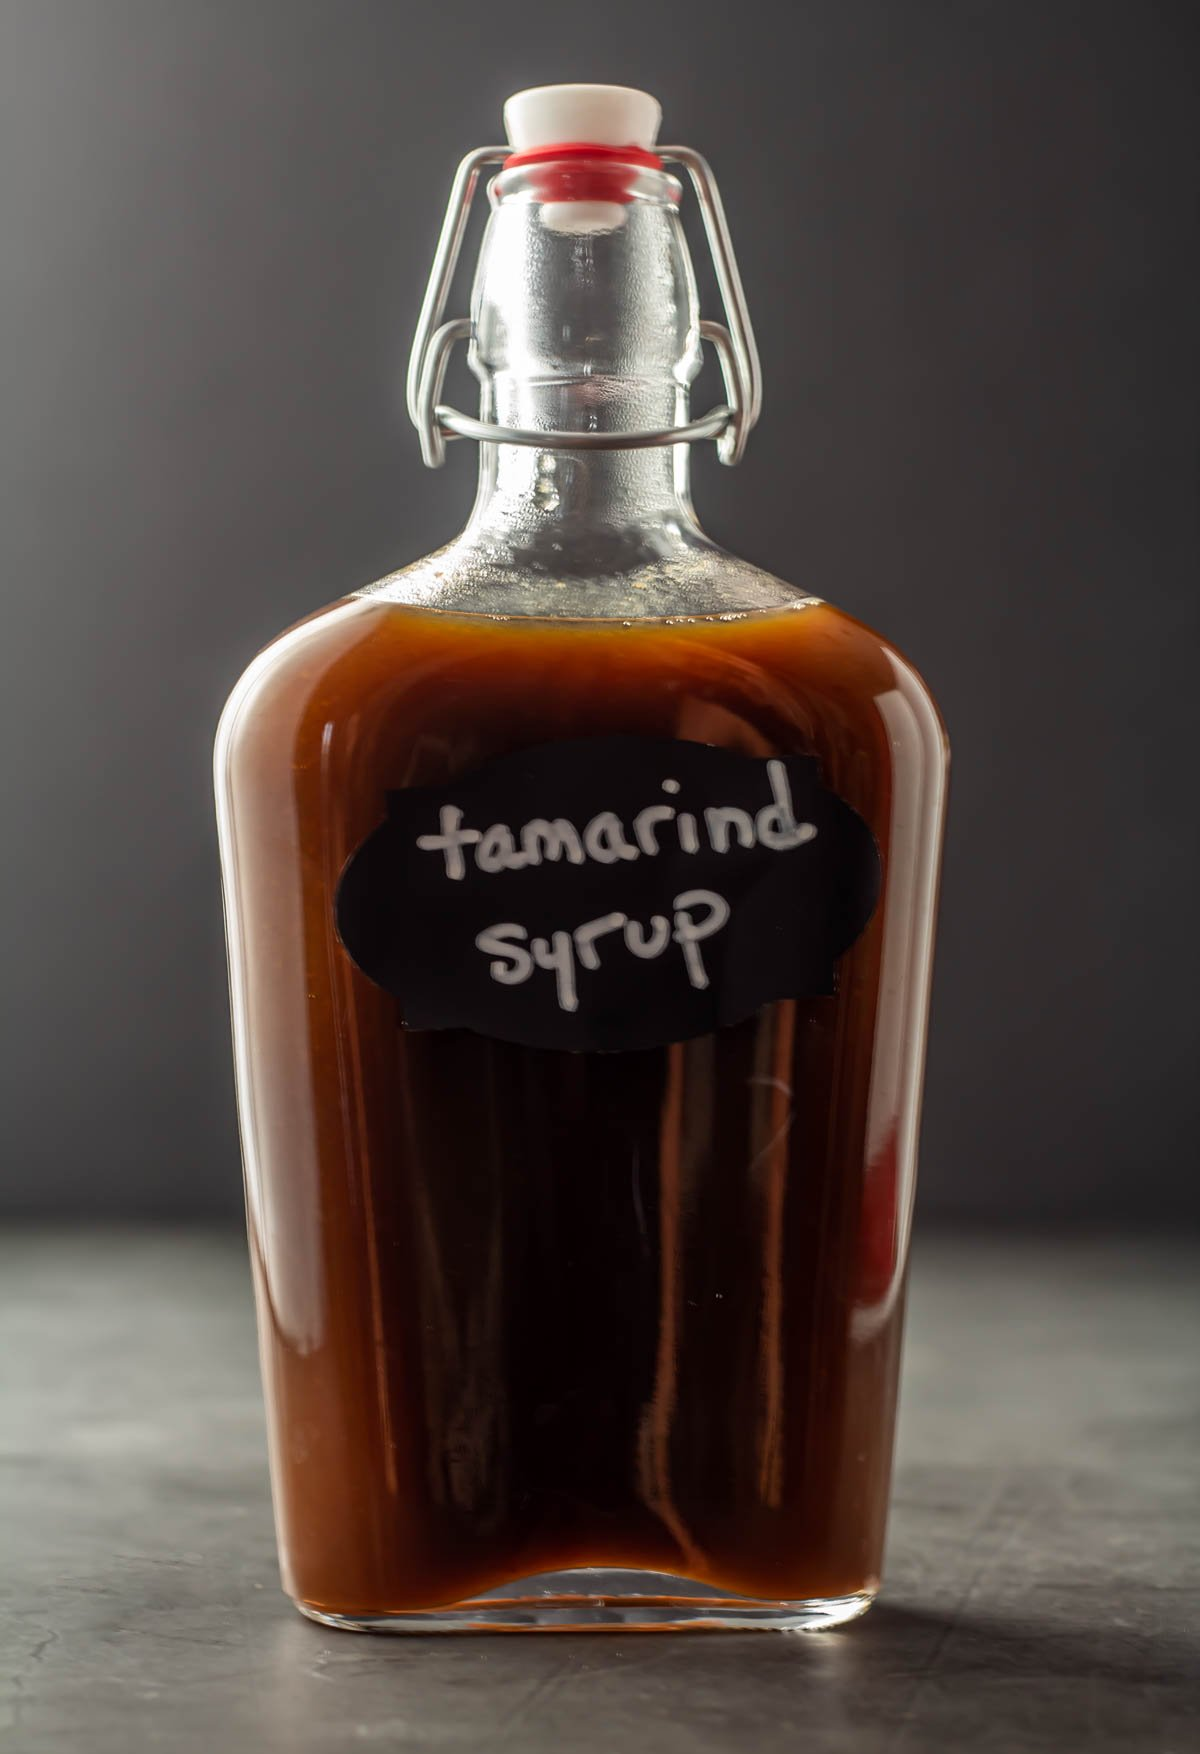 A tall glass bottle of tamarind syrup on a grey background.